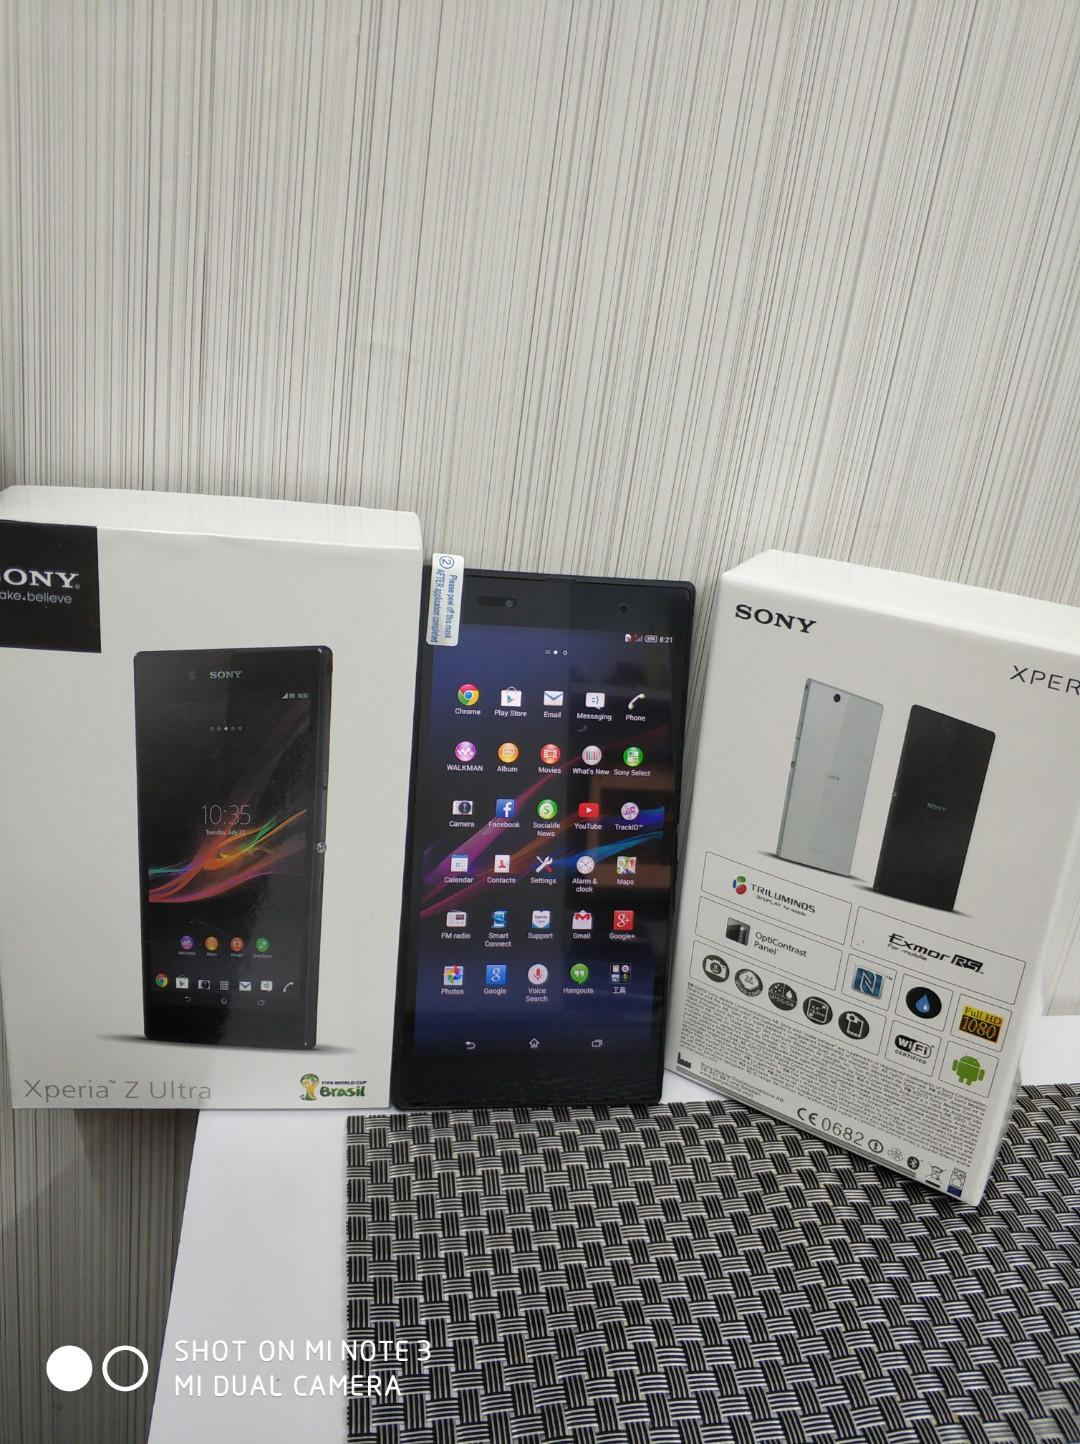 XPERIA Z ULTRA 32GB FULLY NEW CONDITION WITH BOX ANS ACCESSORIES